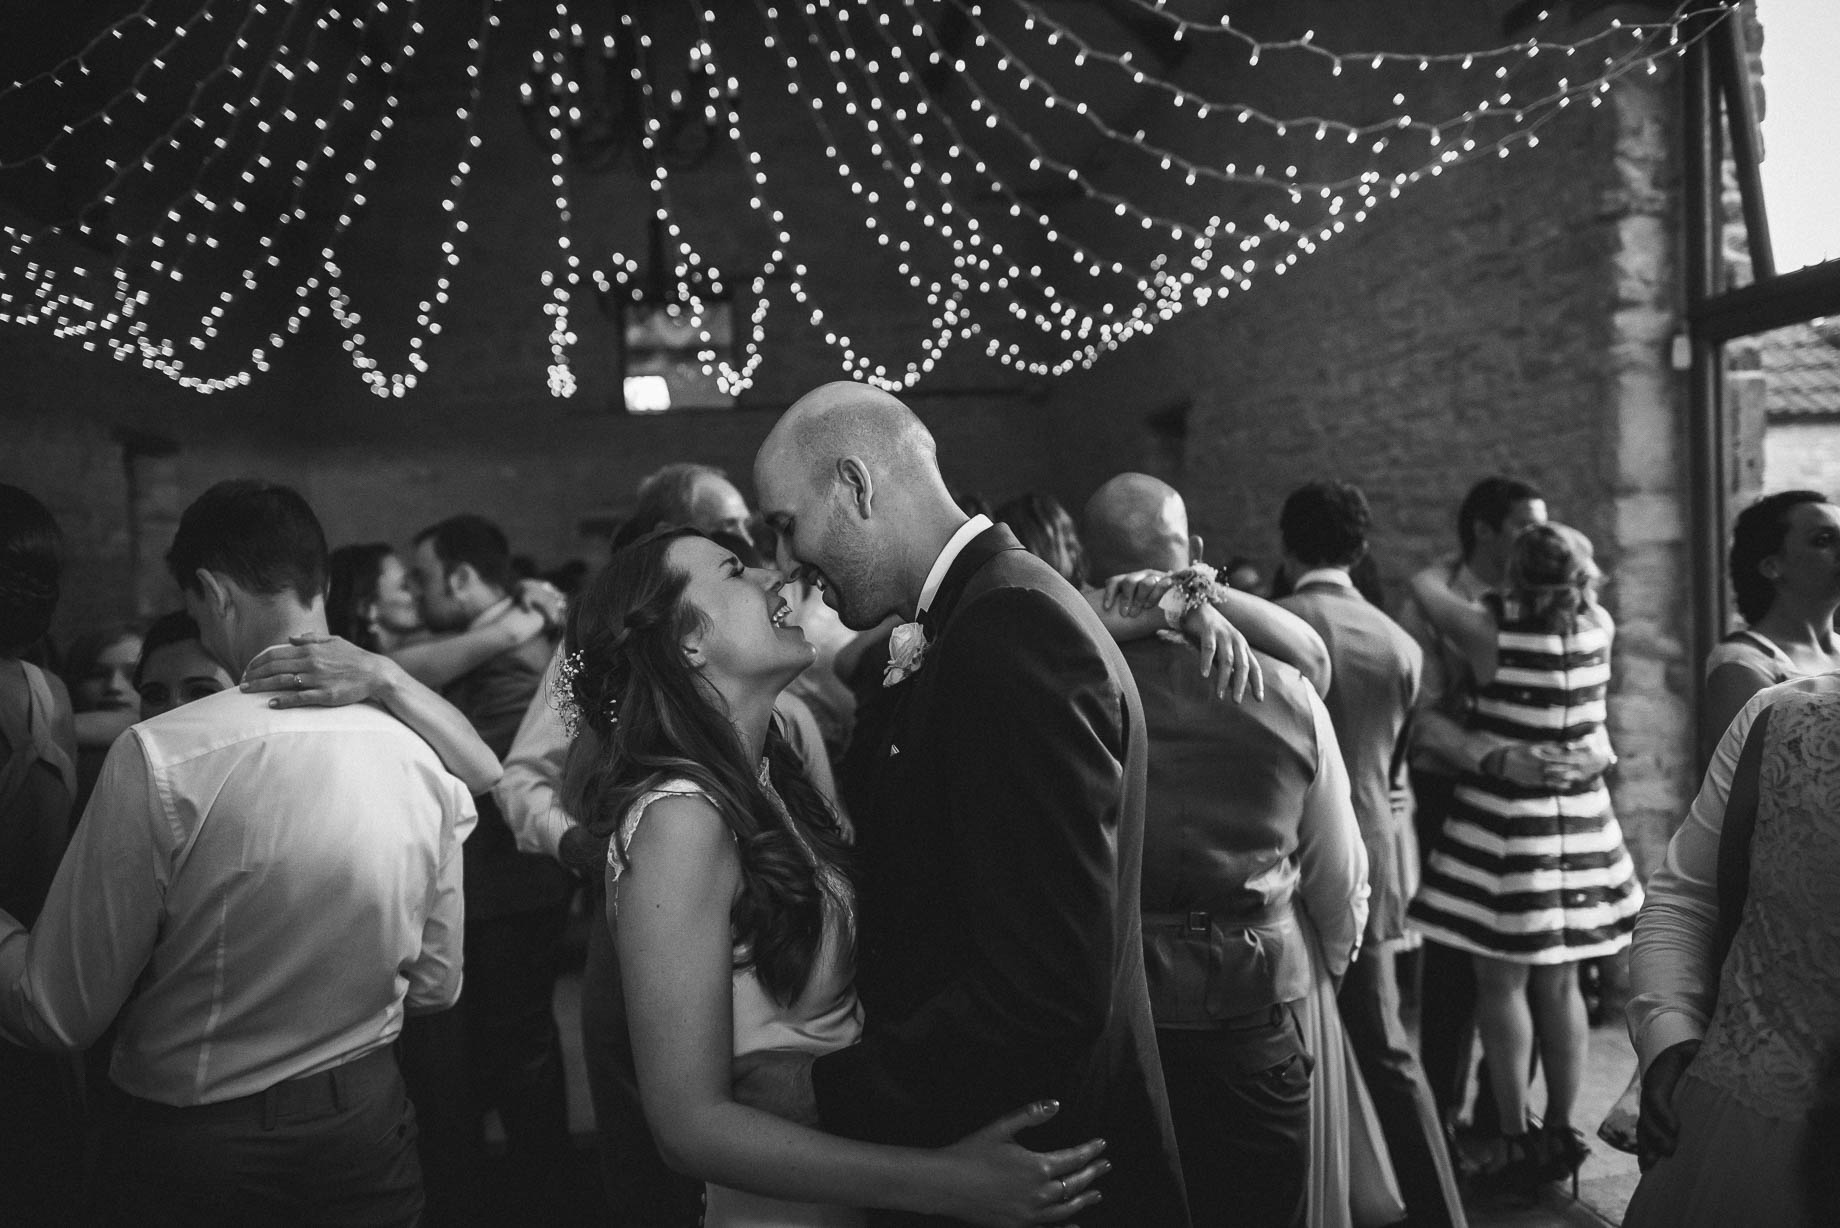 Kingscote Barn wedding photography - Claire + Ewan